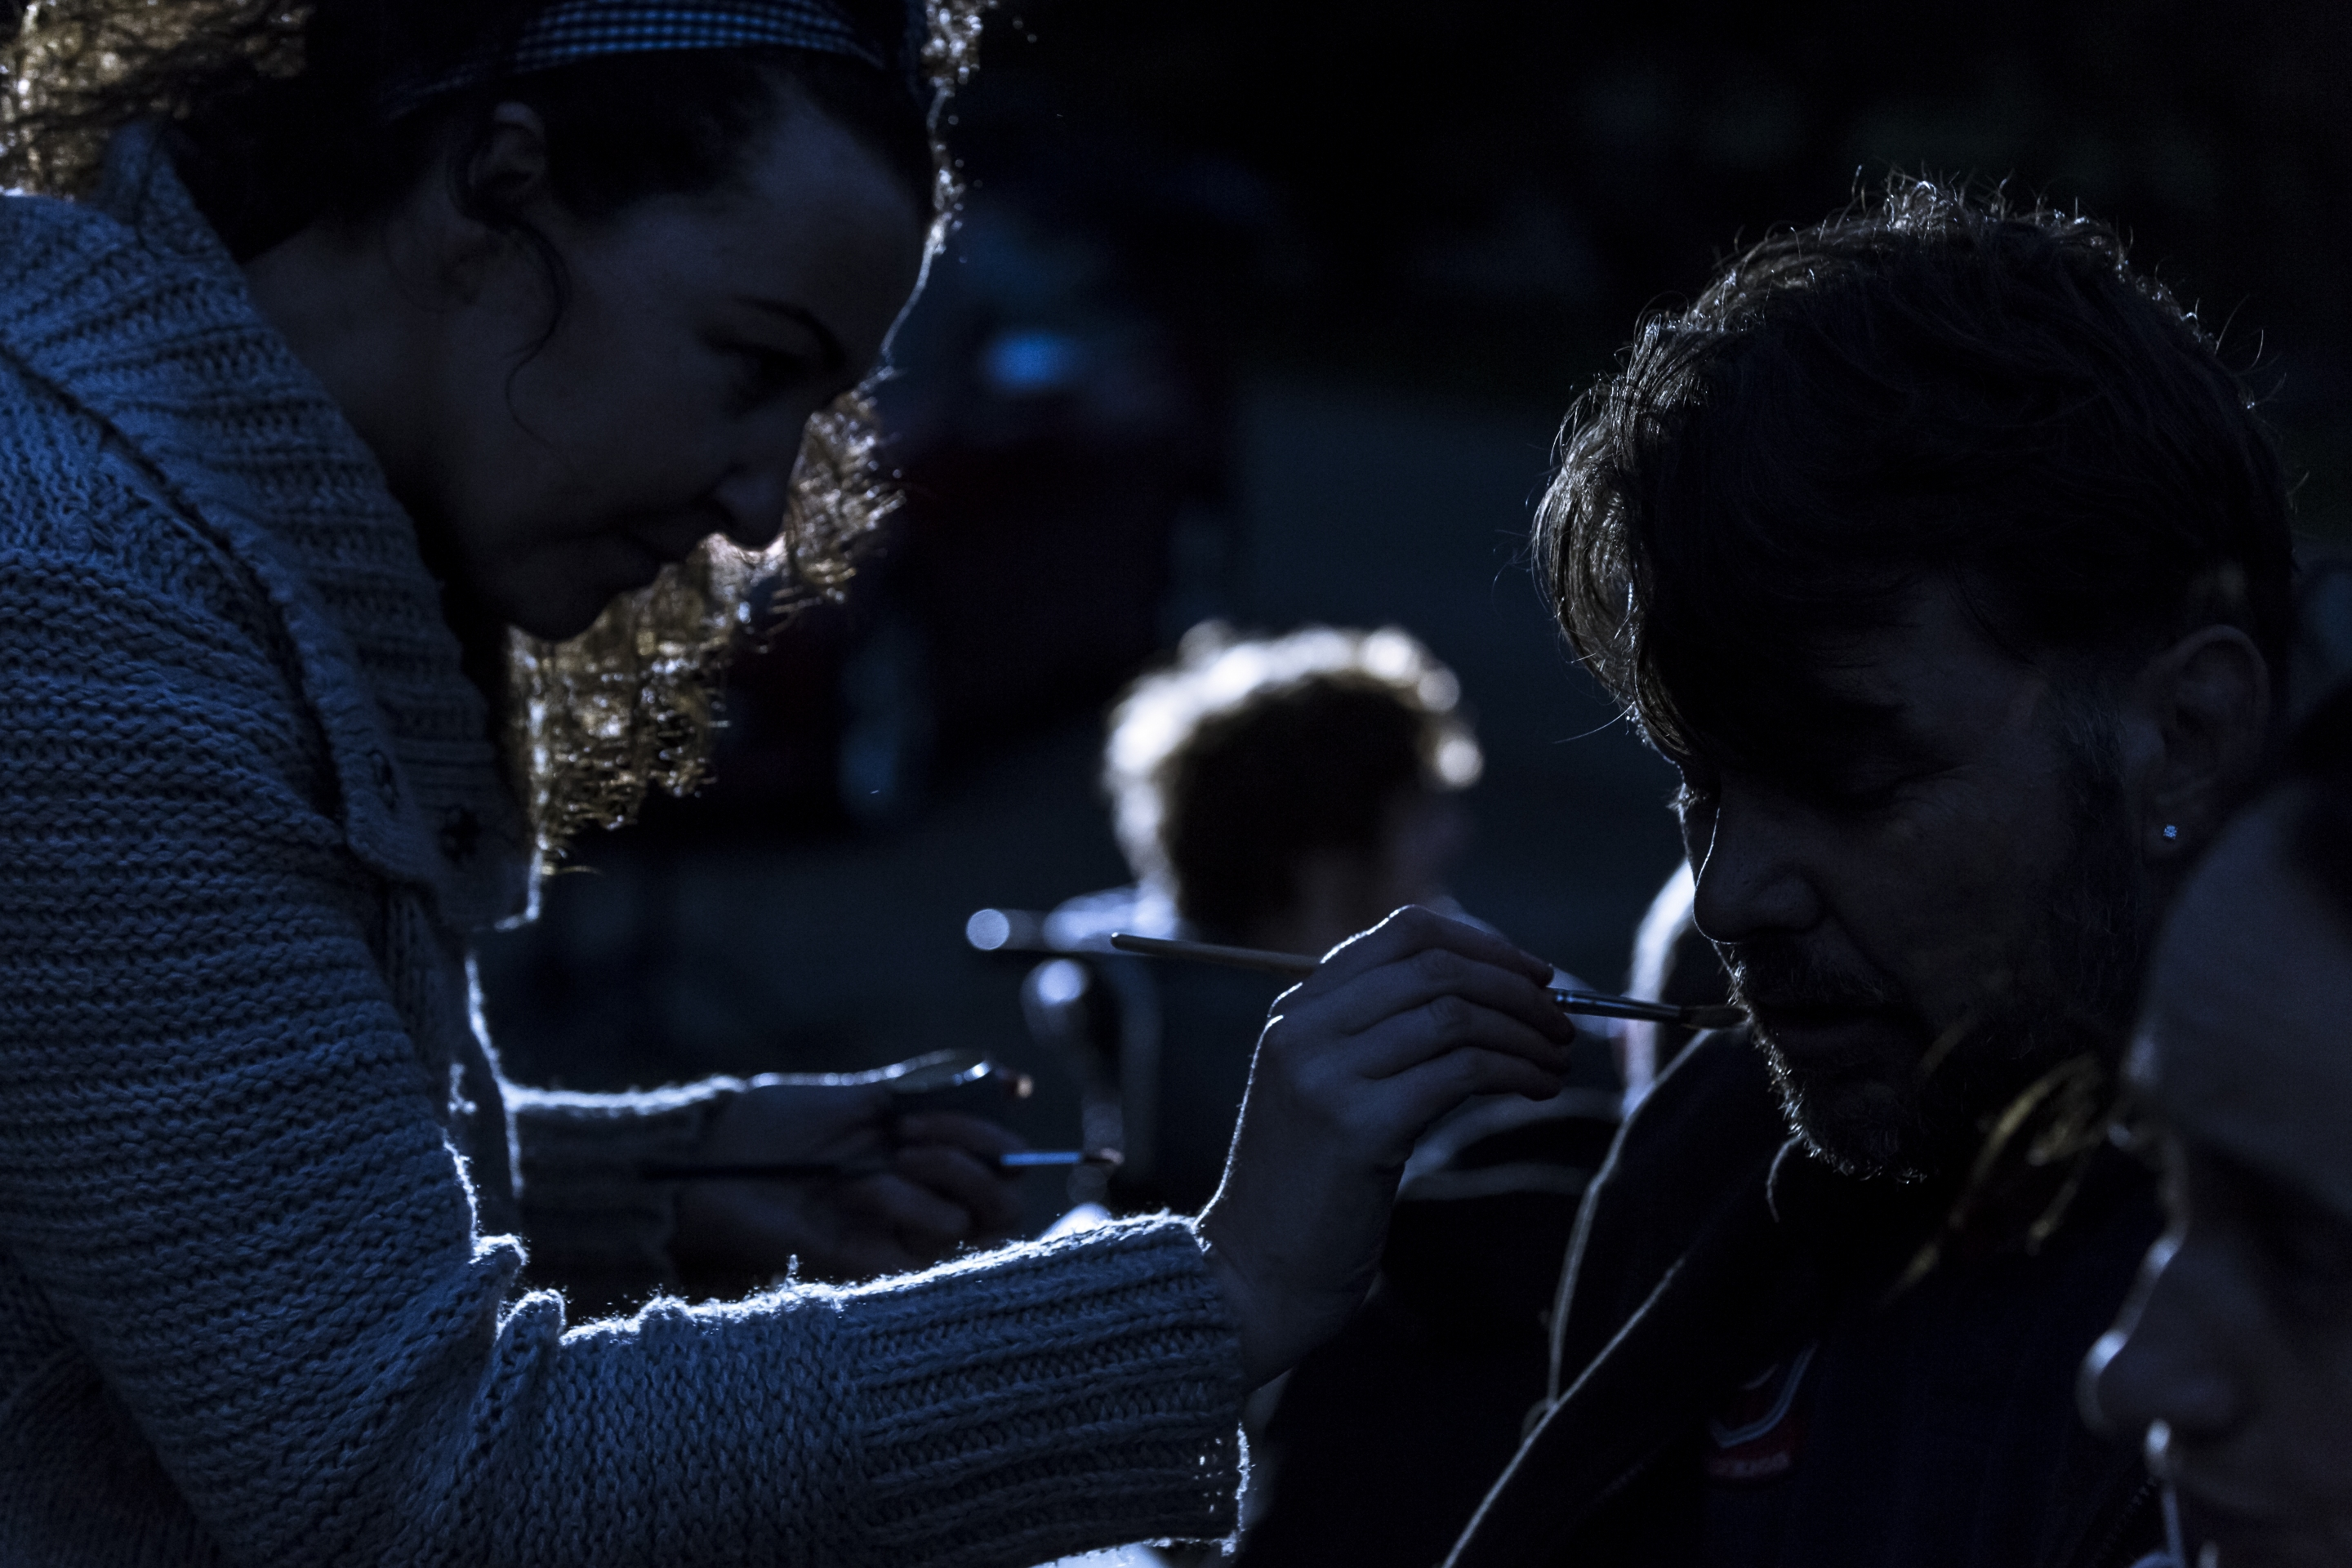 A quick touch of makeup during takes of The Blackout